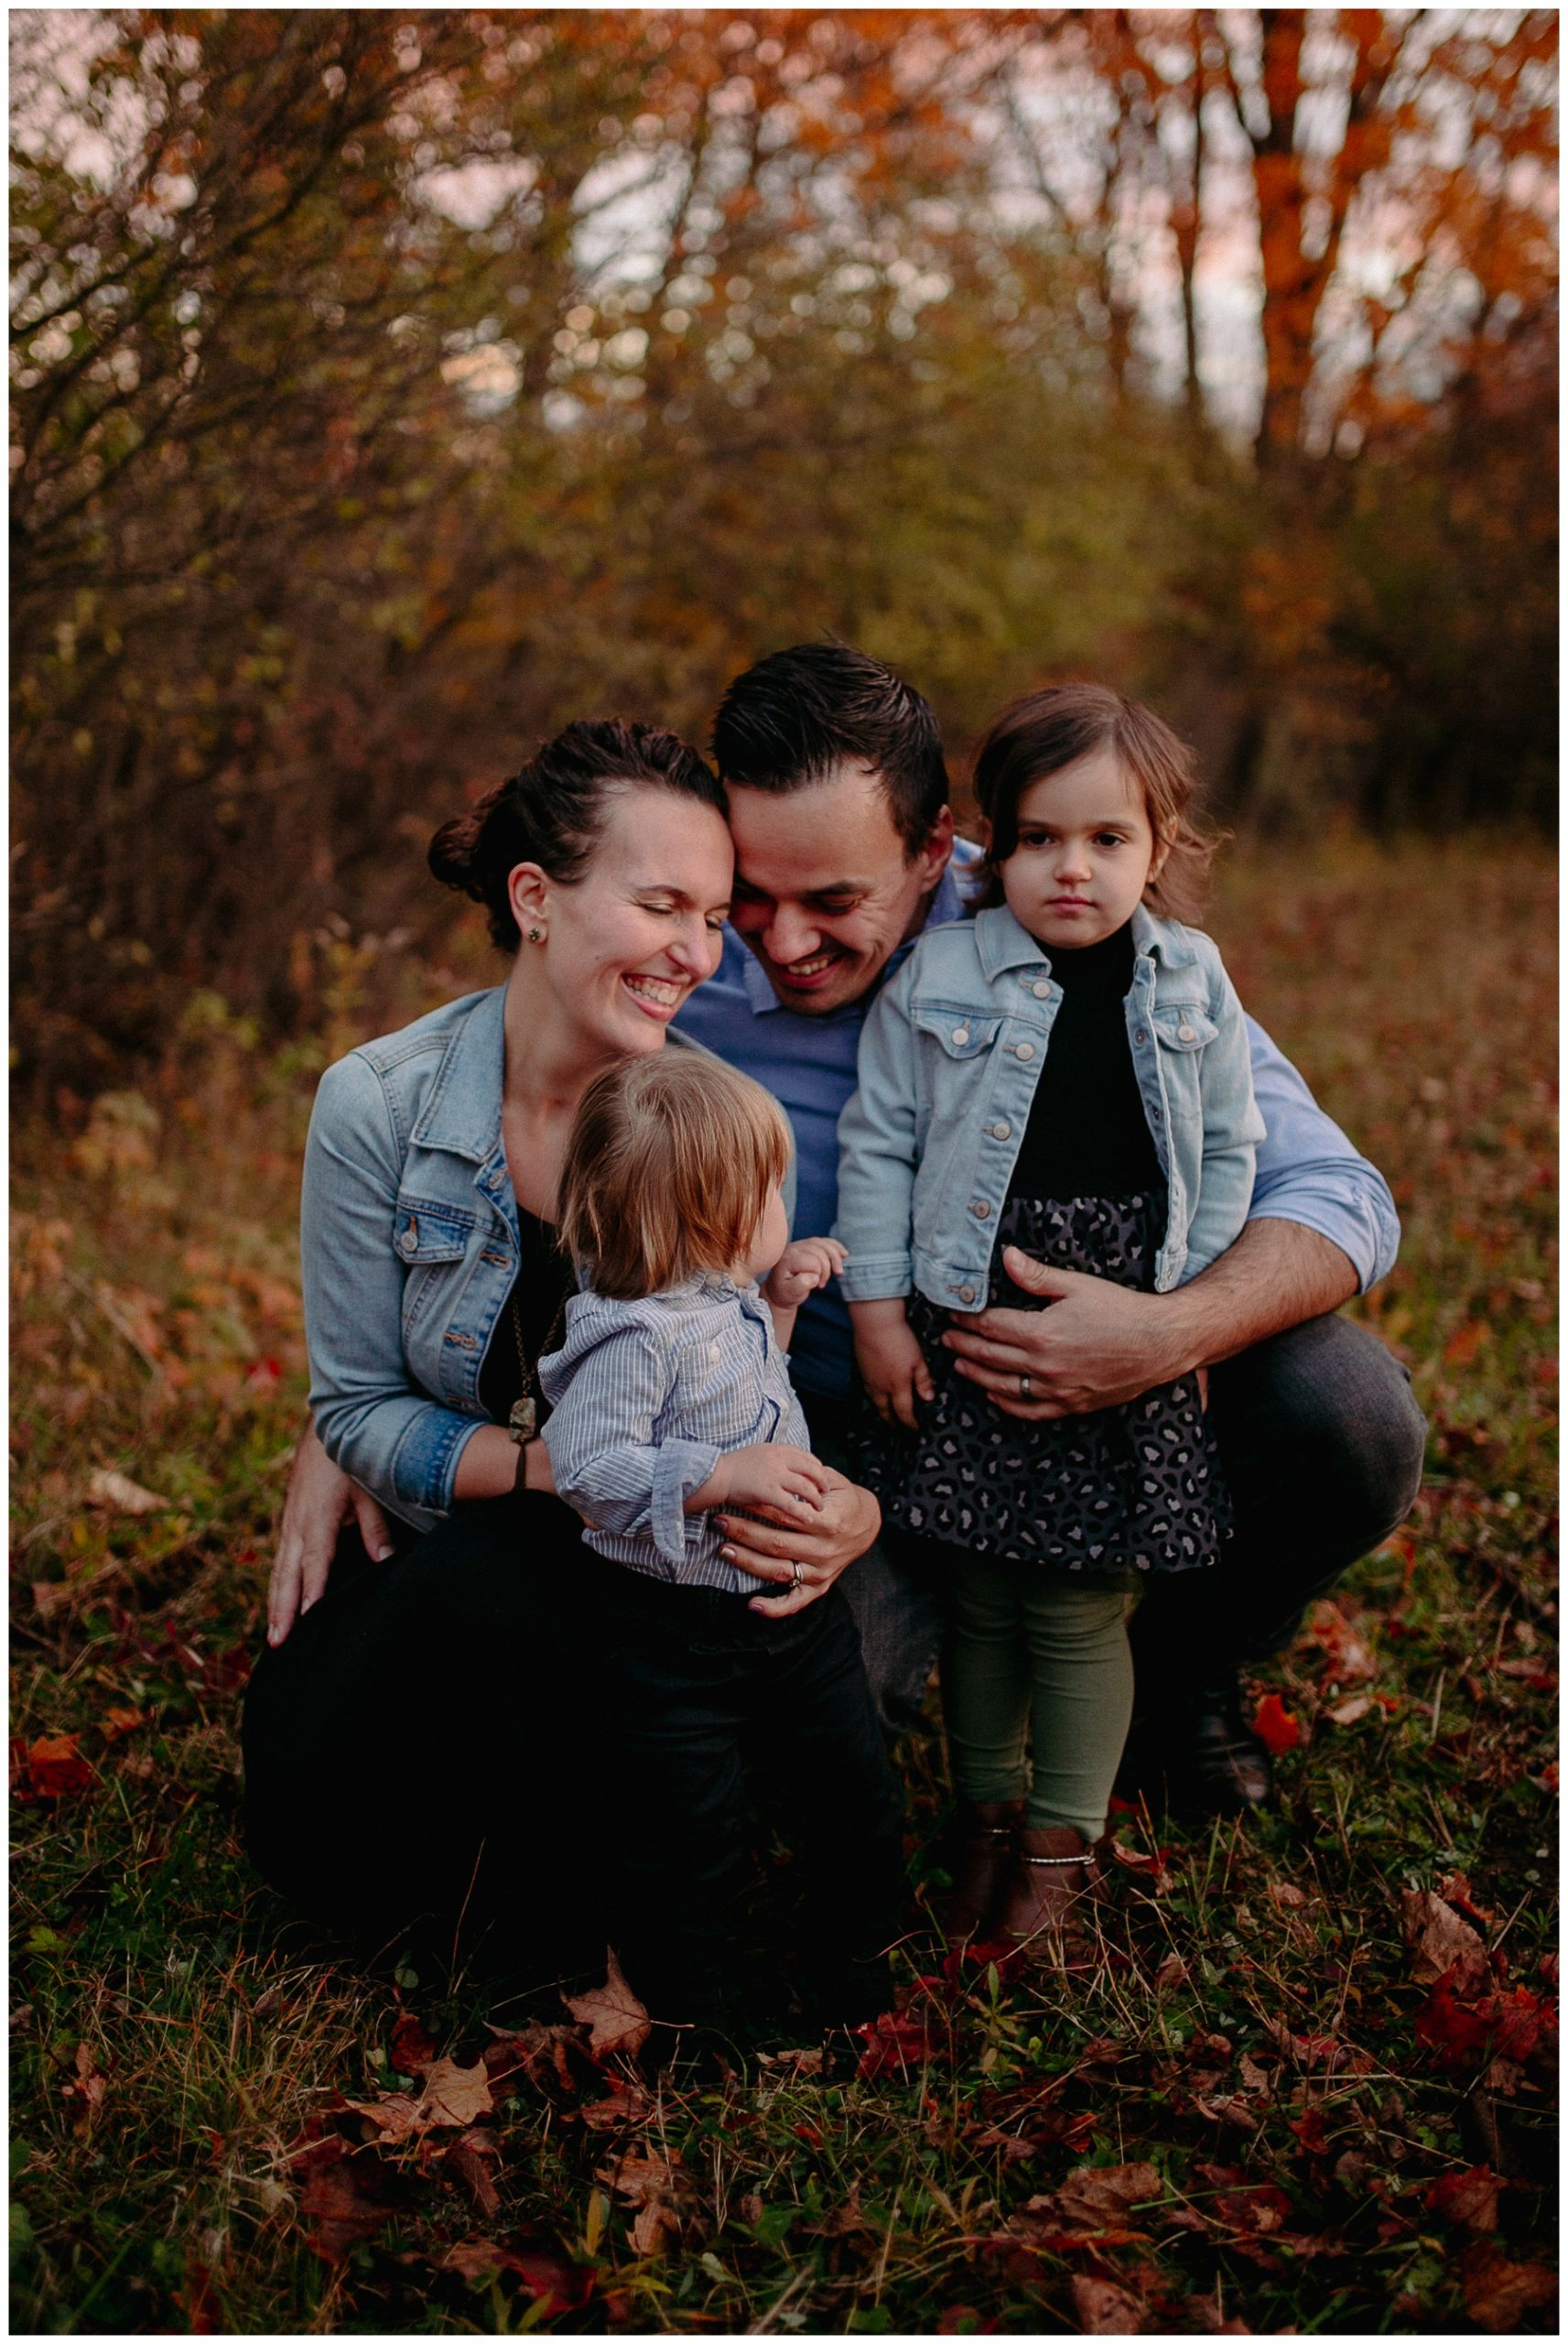 kerry ford photography - fall autumn family session perth041.jpg